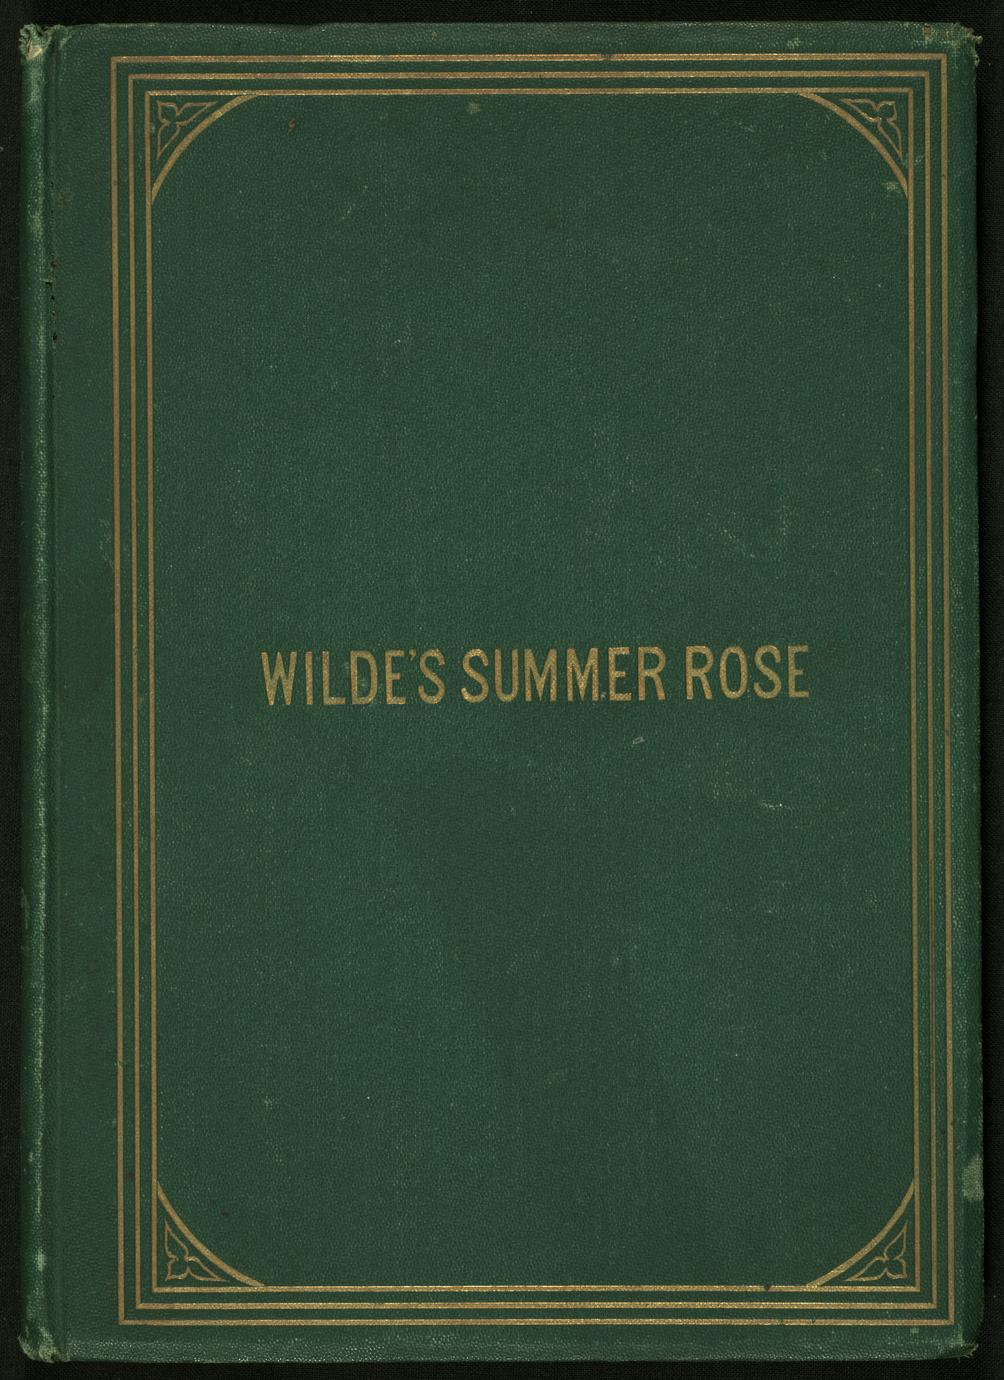 Wilde's Summer rose ; or, The lament of the captive